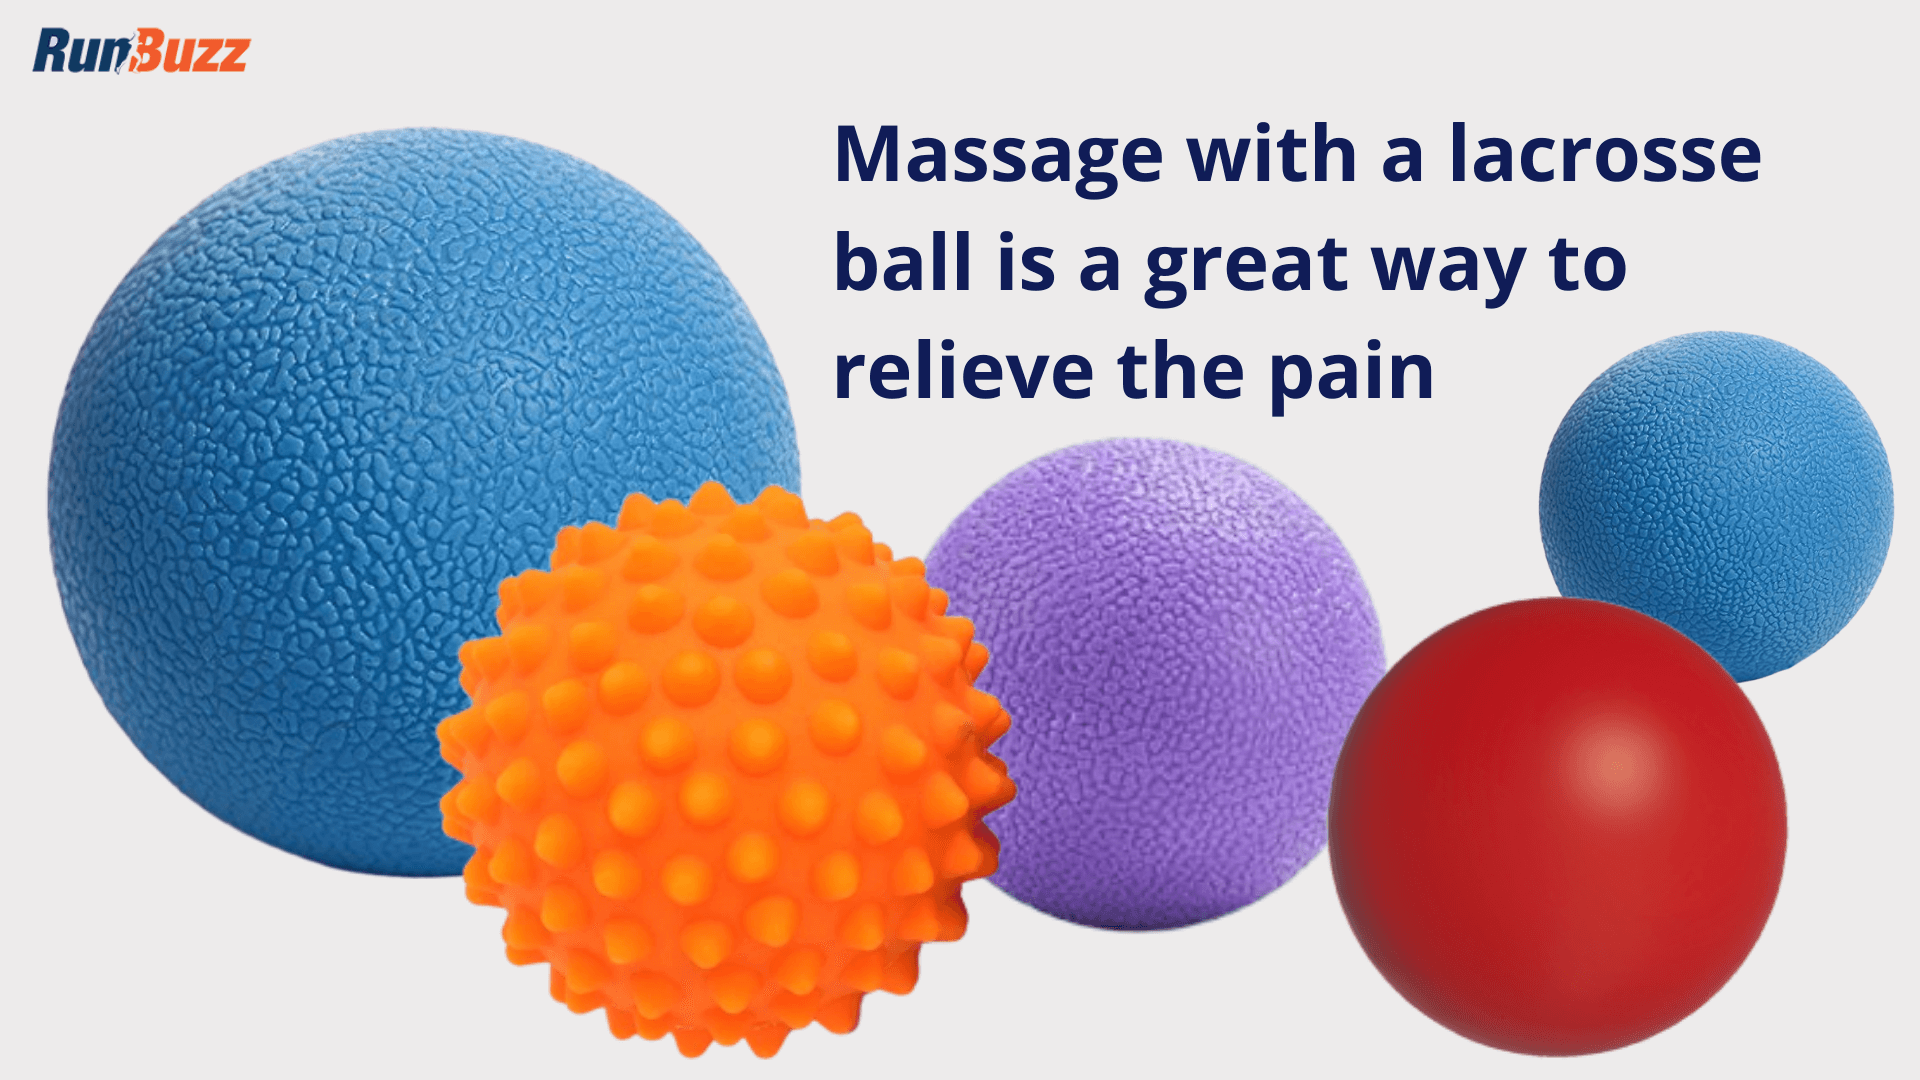 Massage-with-a-lacrosse-ball